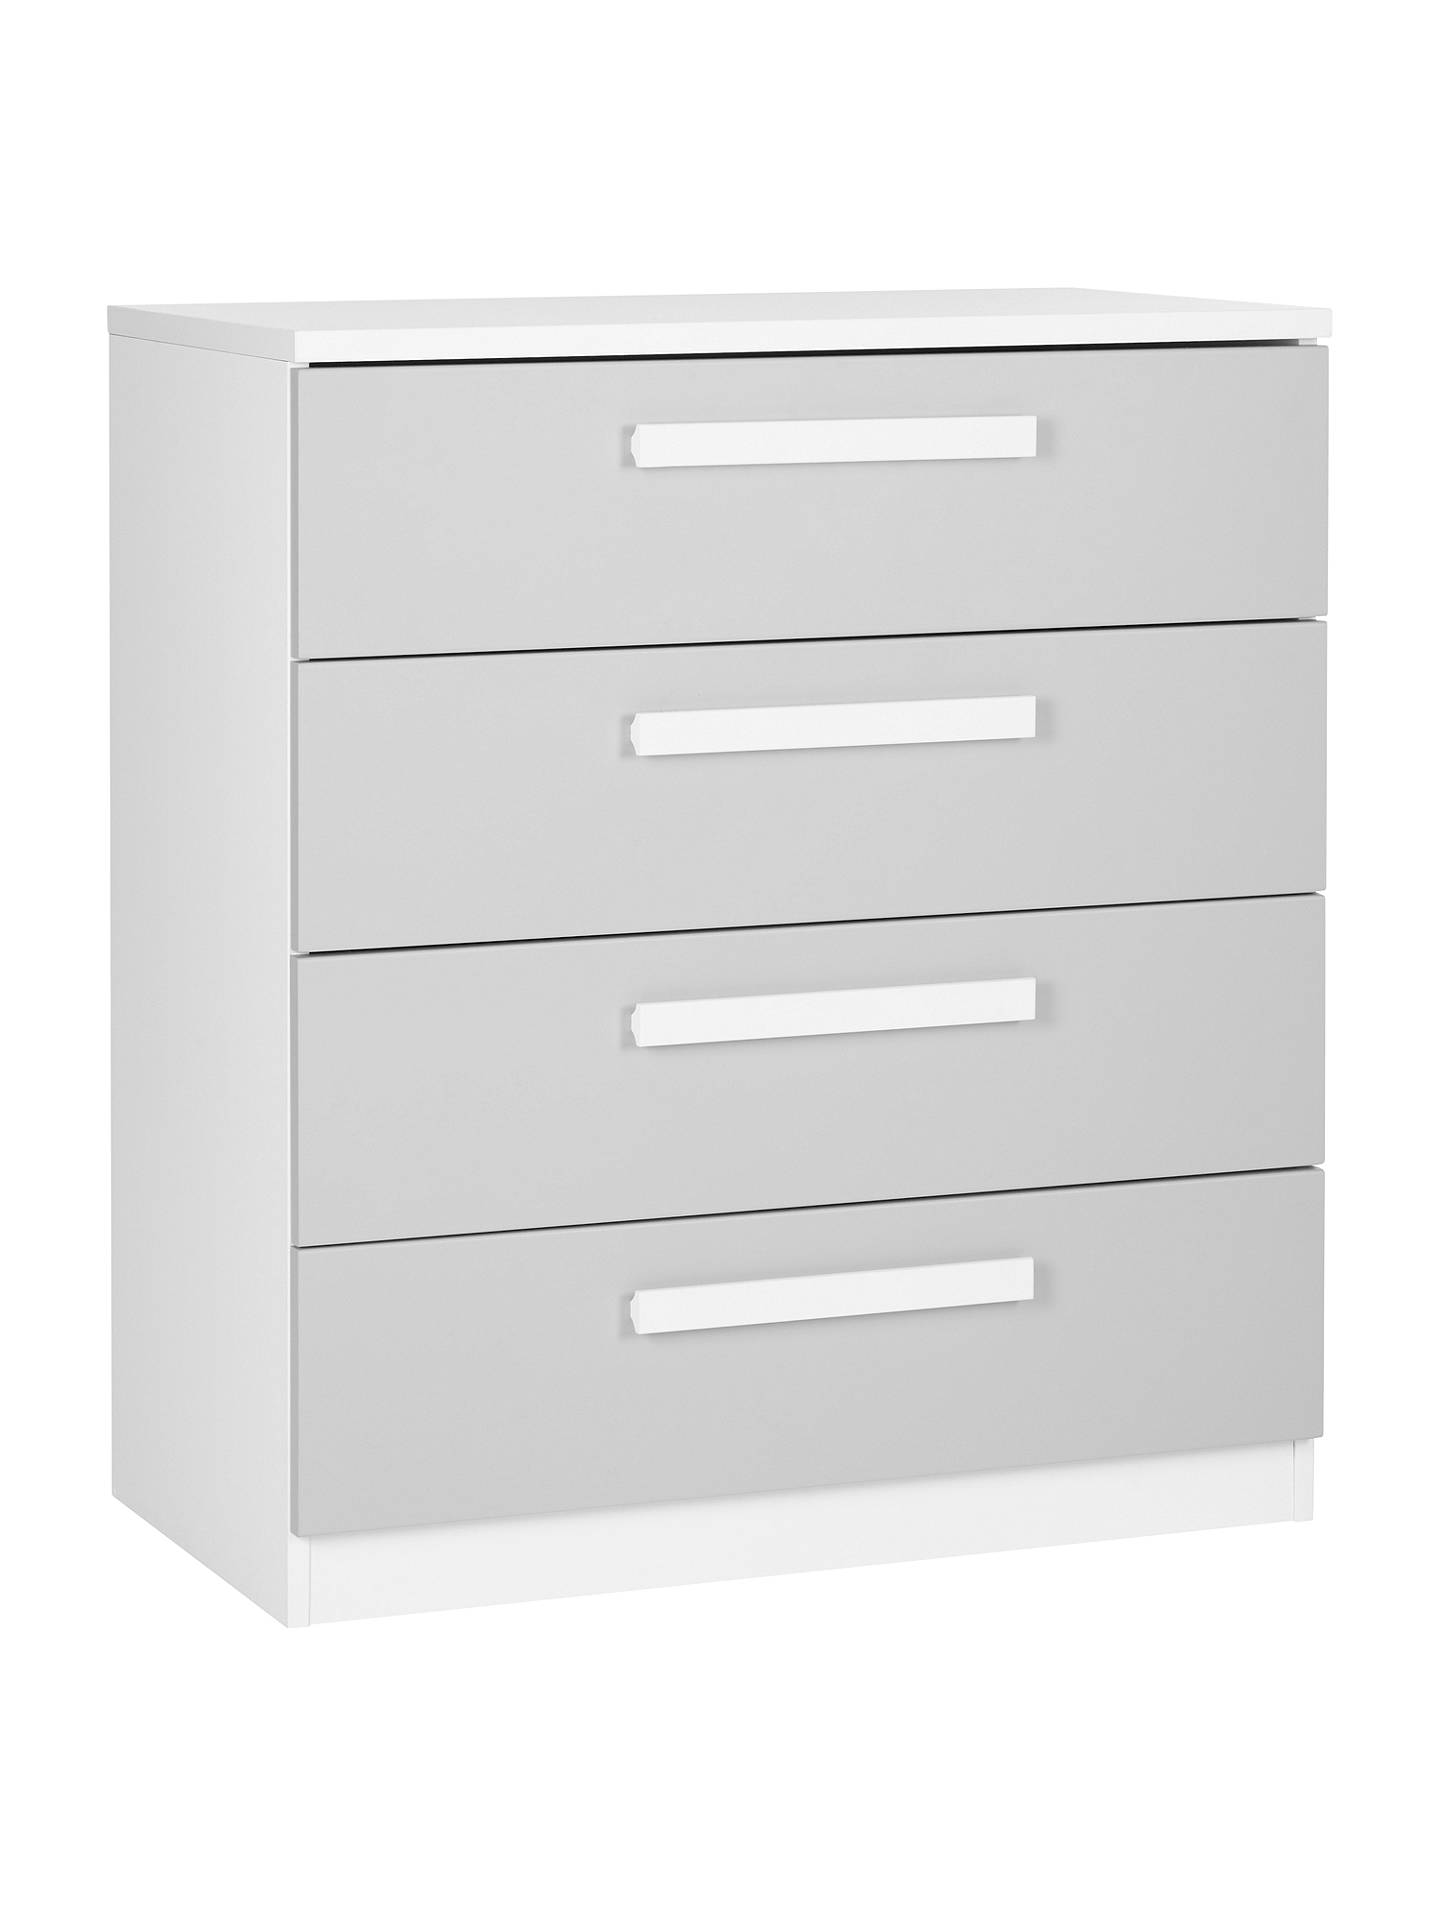 BuyHouse by John Lewis Mix it Block Handle Wide 4 Drawer Chest, House Smoke/Matt White Online at johnlewis.com